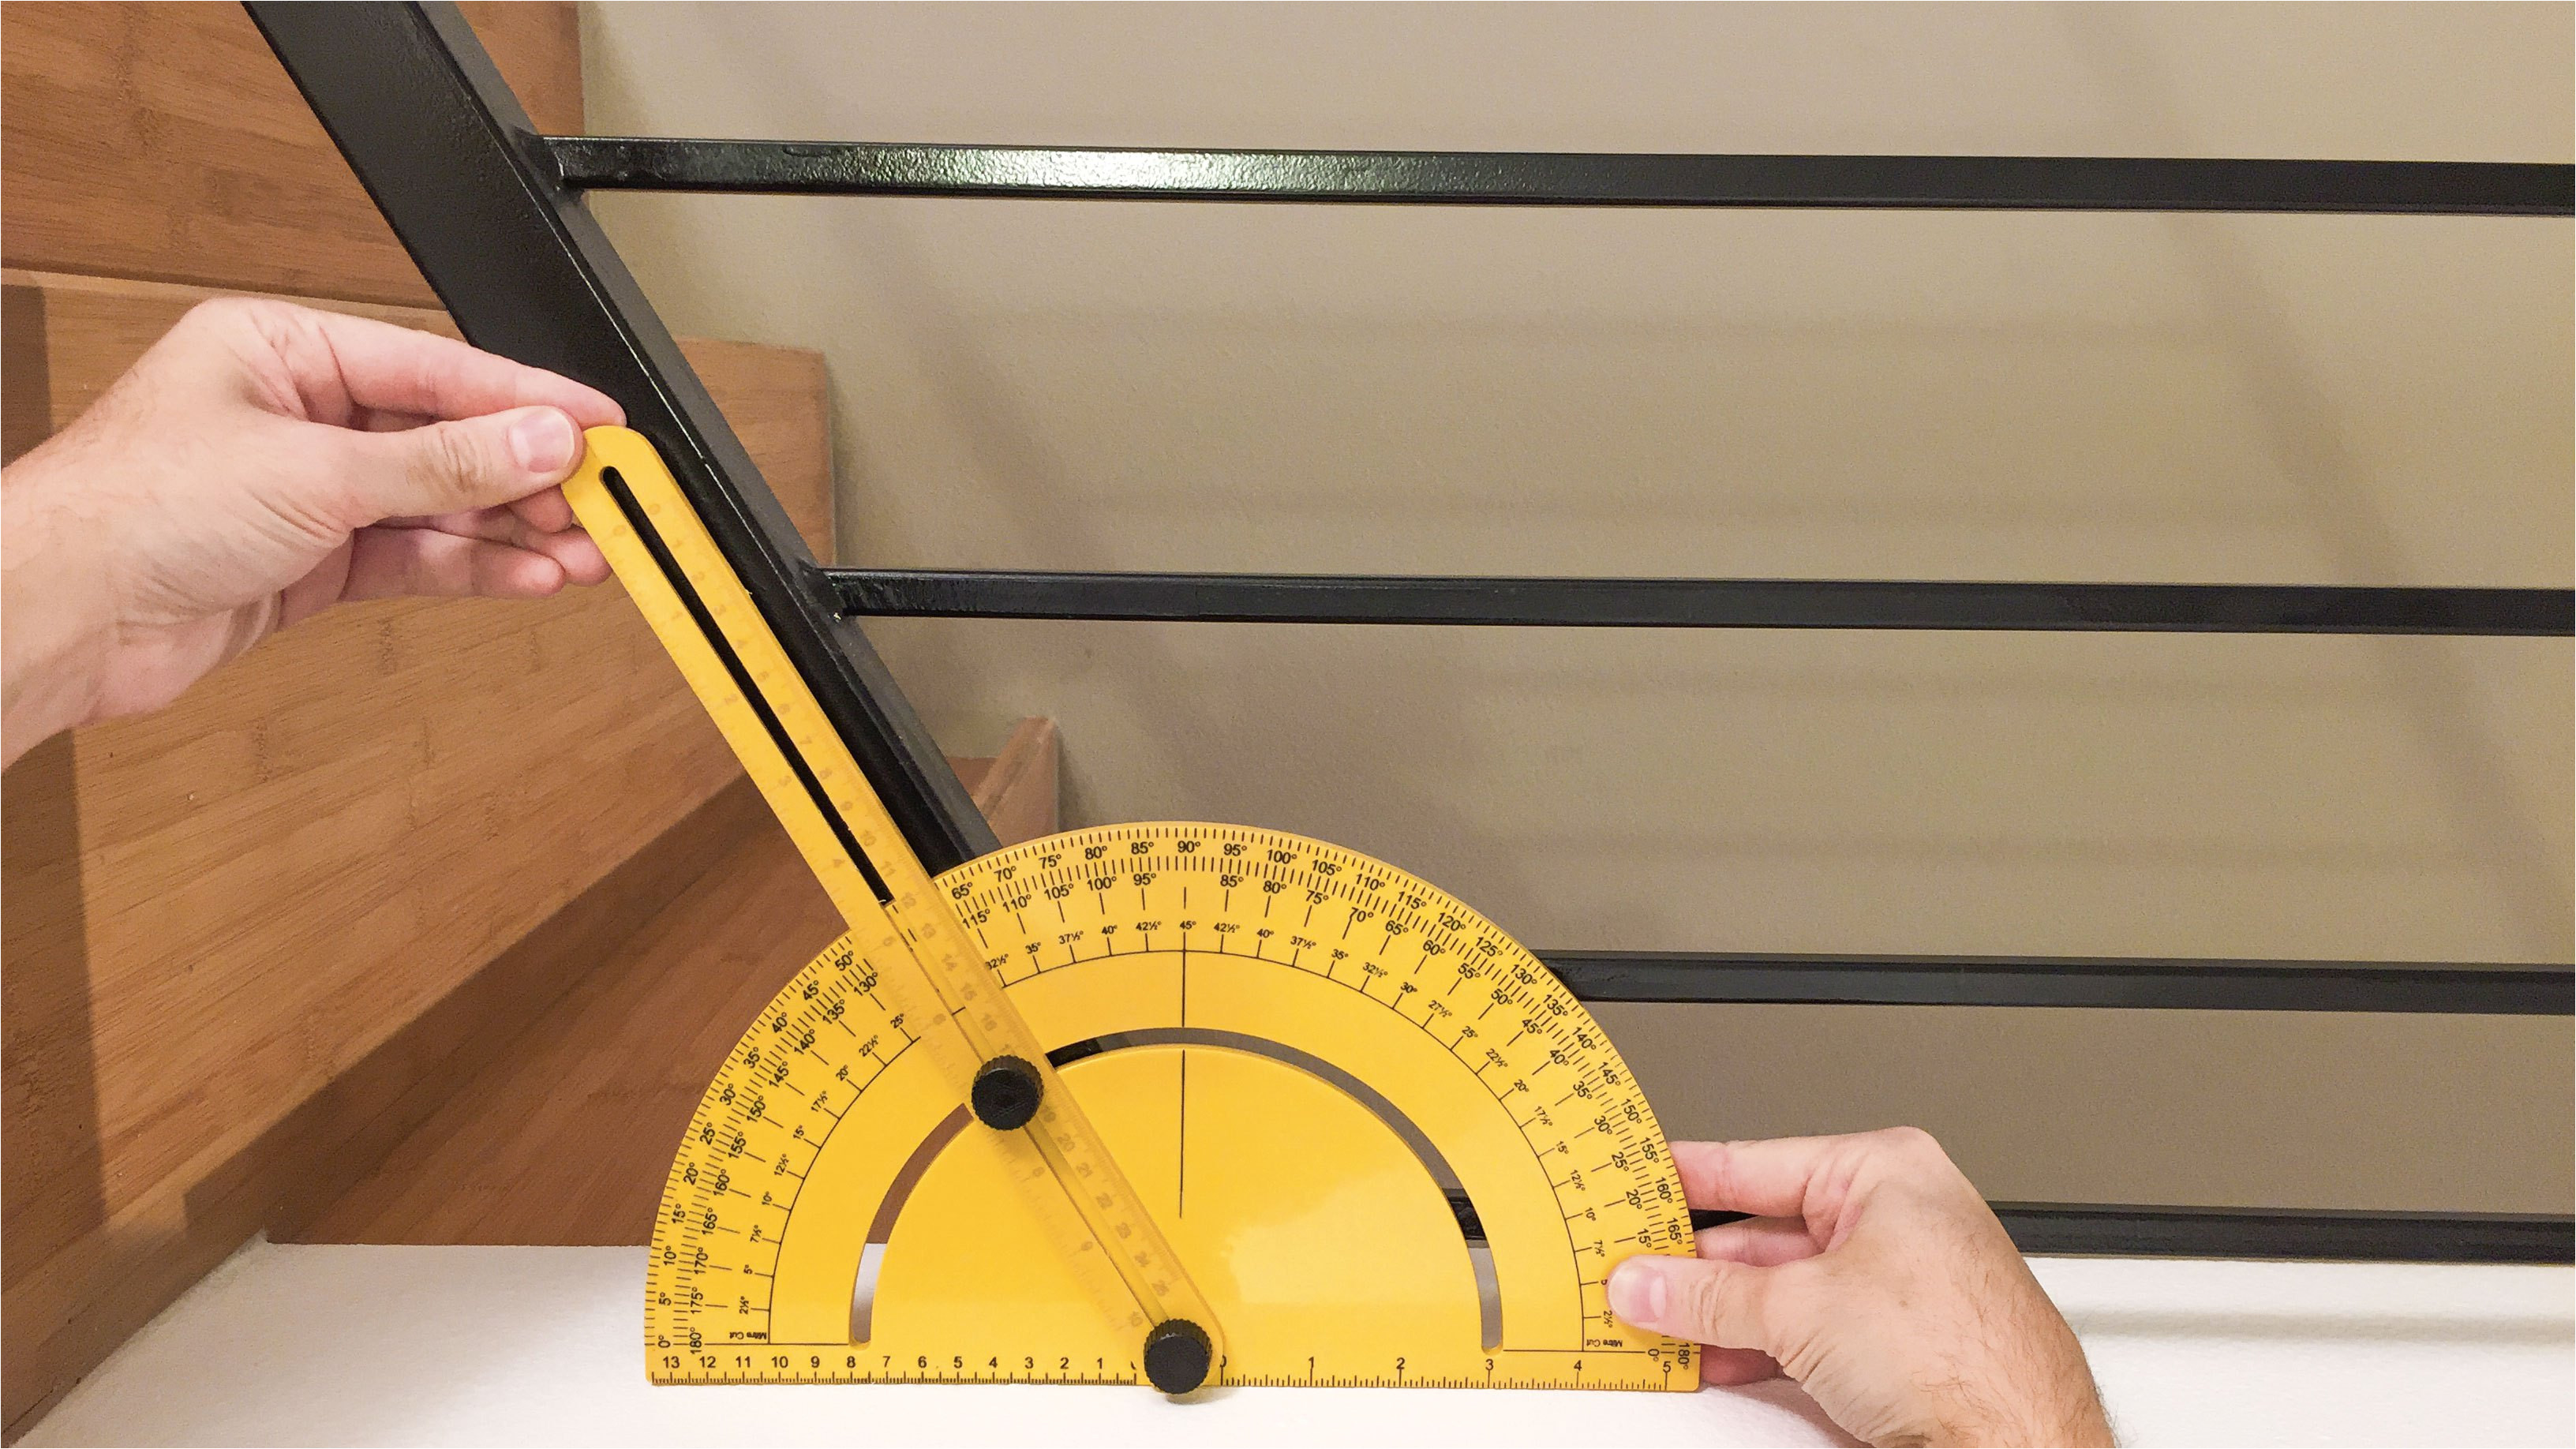 when you need to measure an exact angle you need a protractor they range from stamped pieces of clear plastic to large digital models with mounted lasers